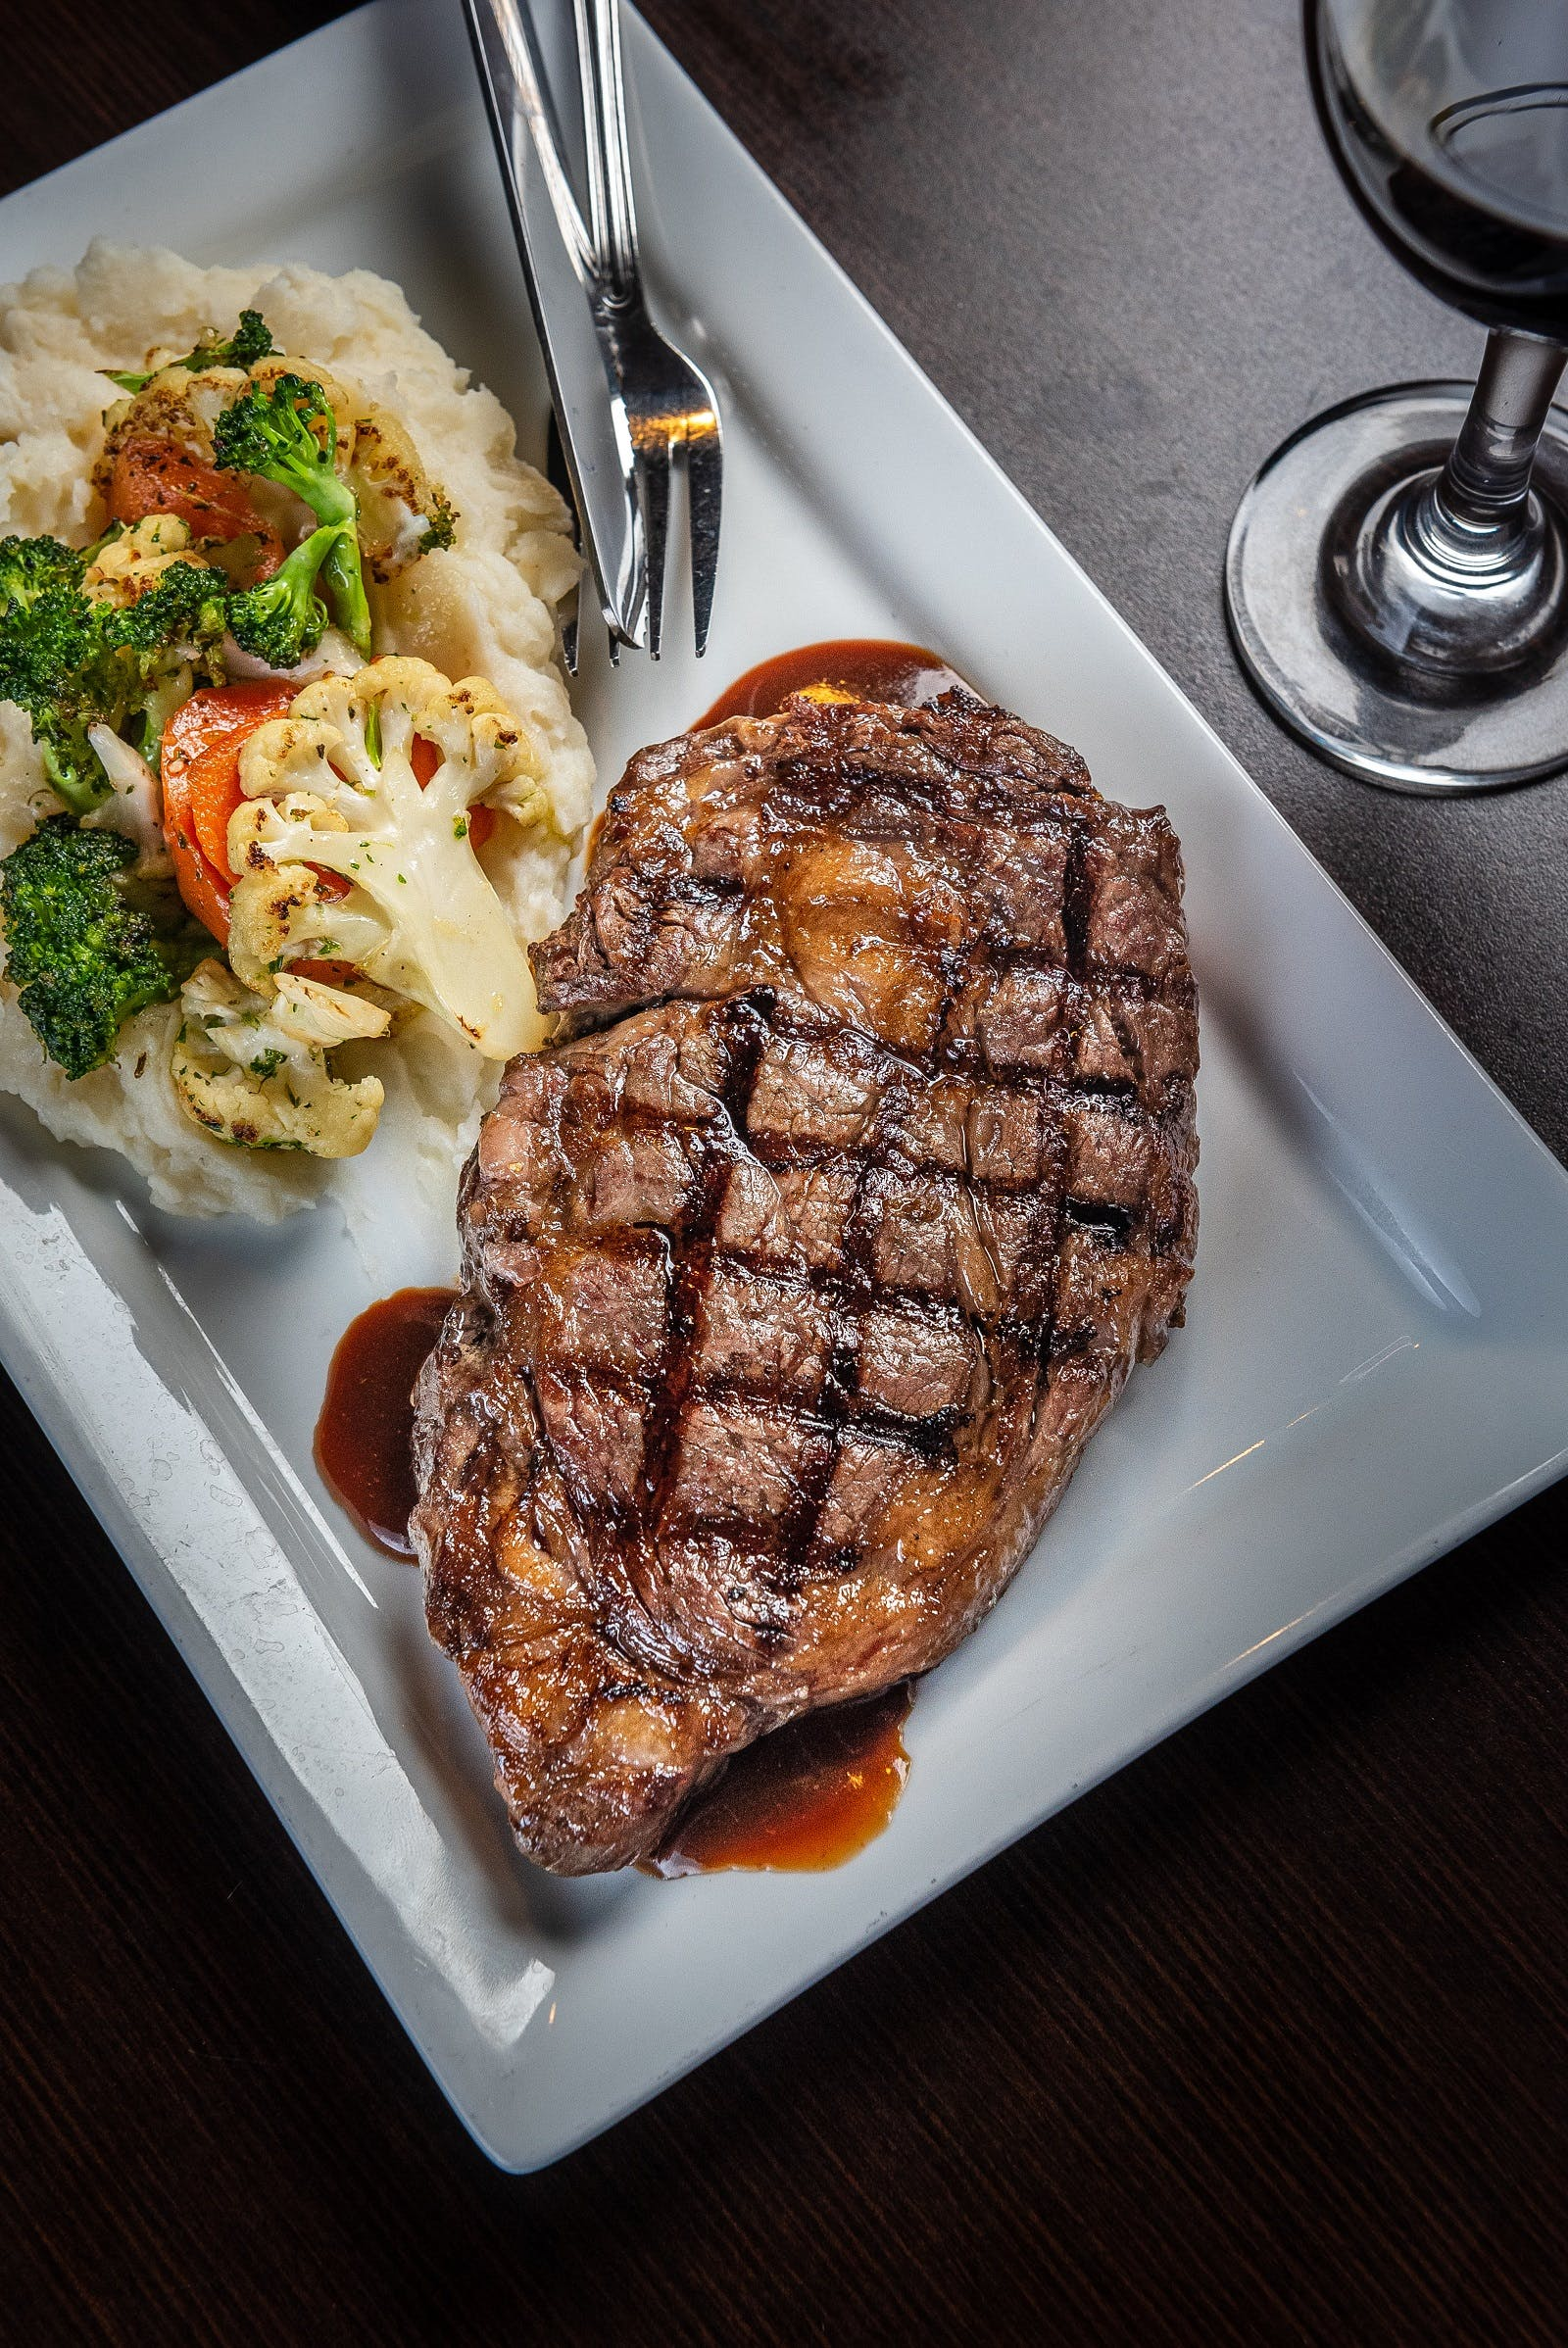 steak and vegetables on a plate